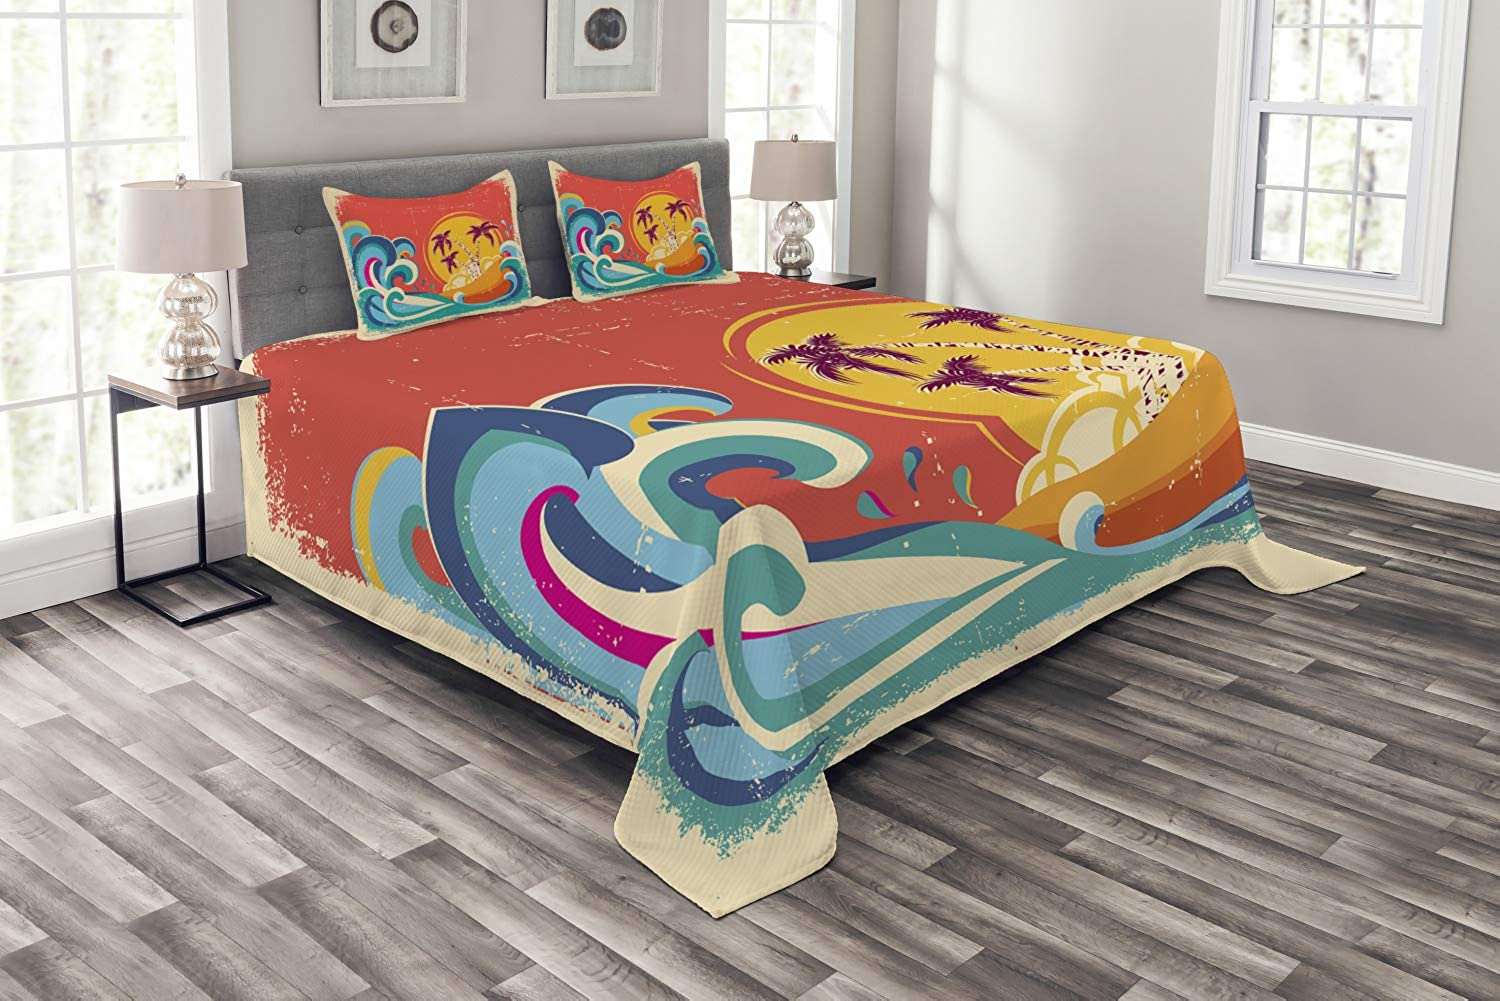 Lunarable Vintage Hawaii Bedspread Set King Size, Vintage Old Paper Style Tropical Island with Giant Waves Retro Background, Decorative Quilted 3 Piece Coverlet Set with 2 Pillow Shams, Multicolor